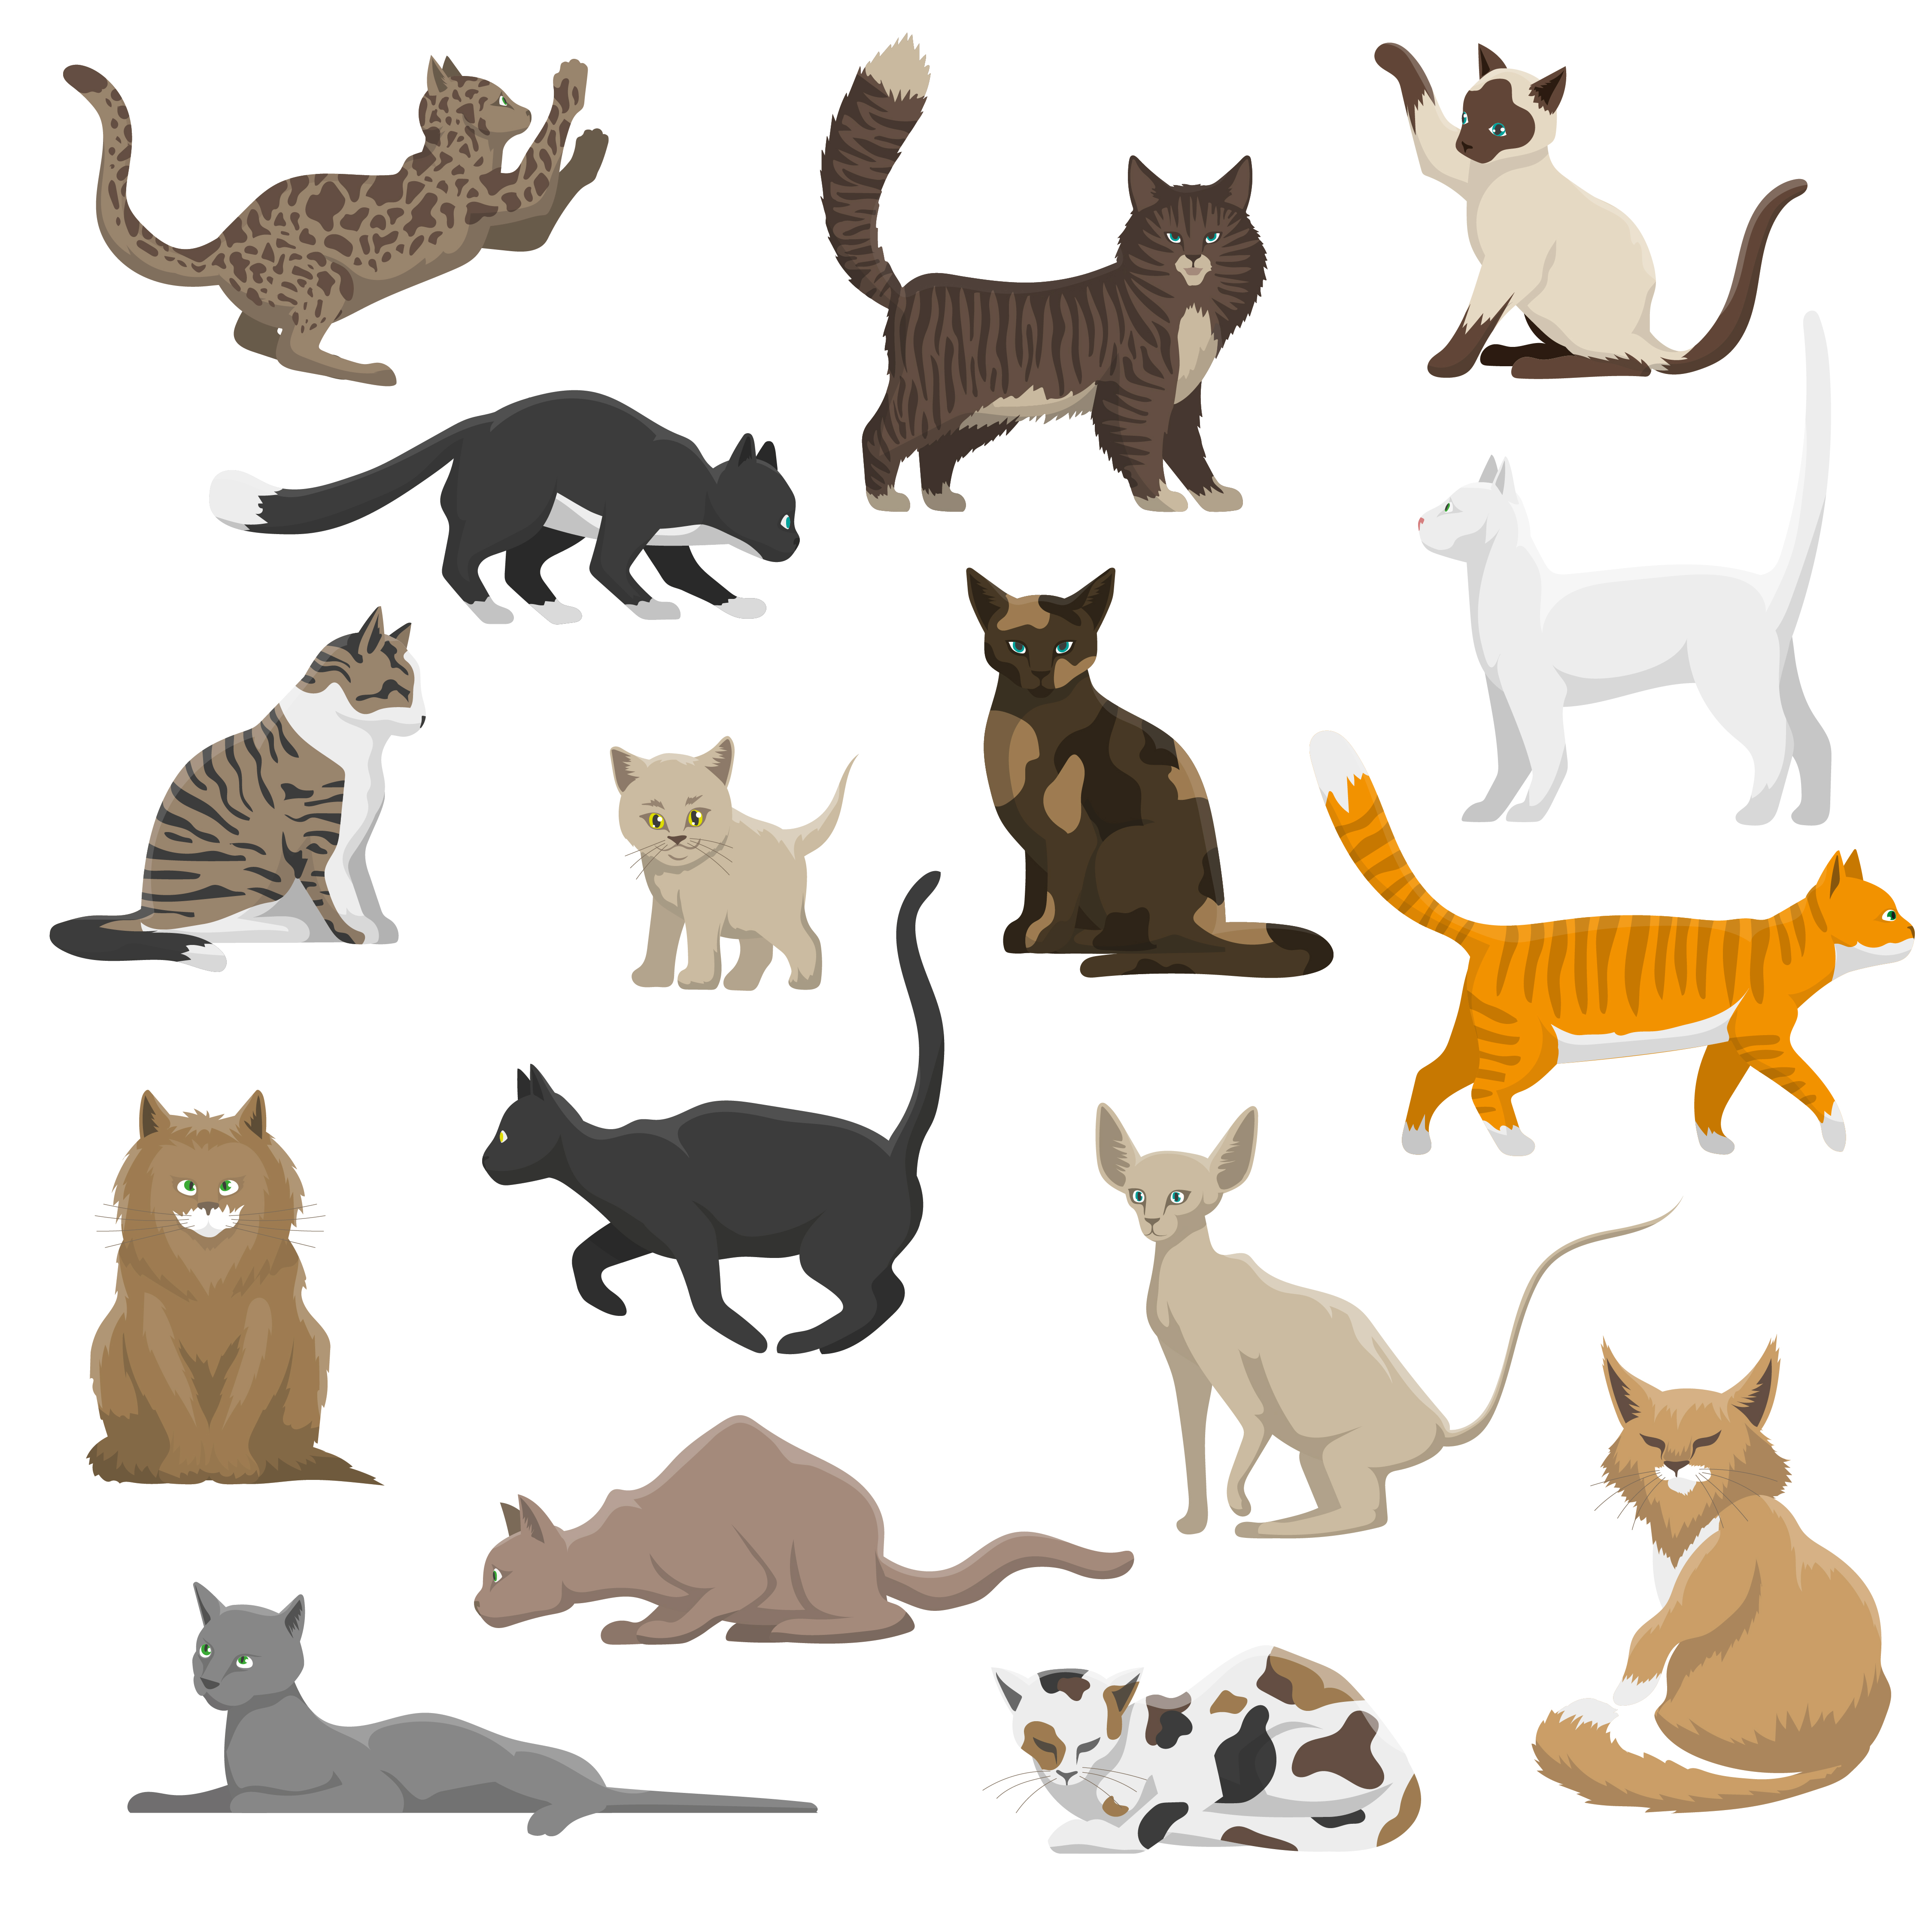 Domestic Cat Breeds Flat Icons Collection 483792